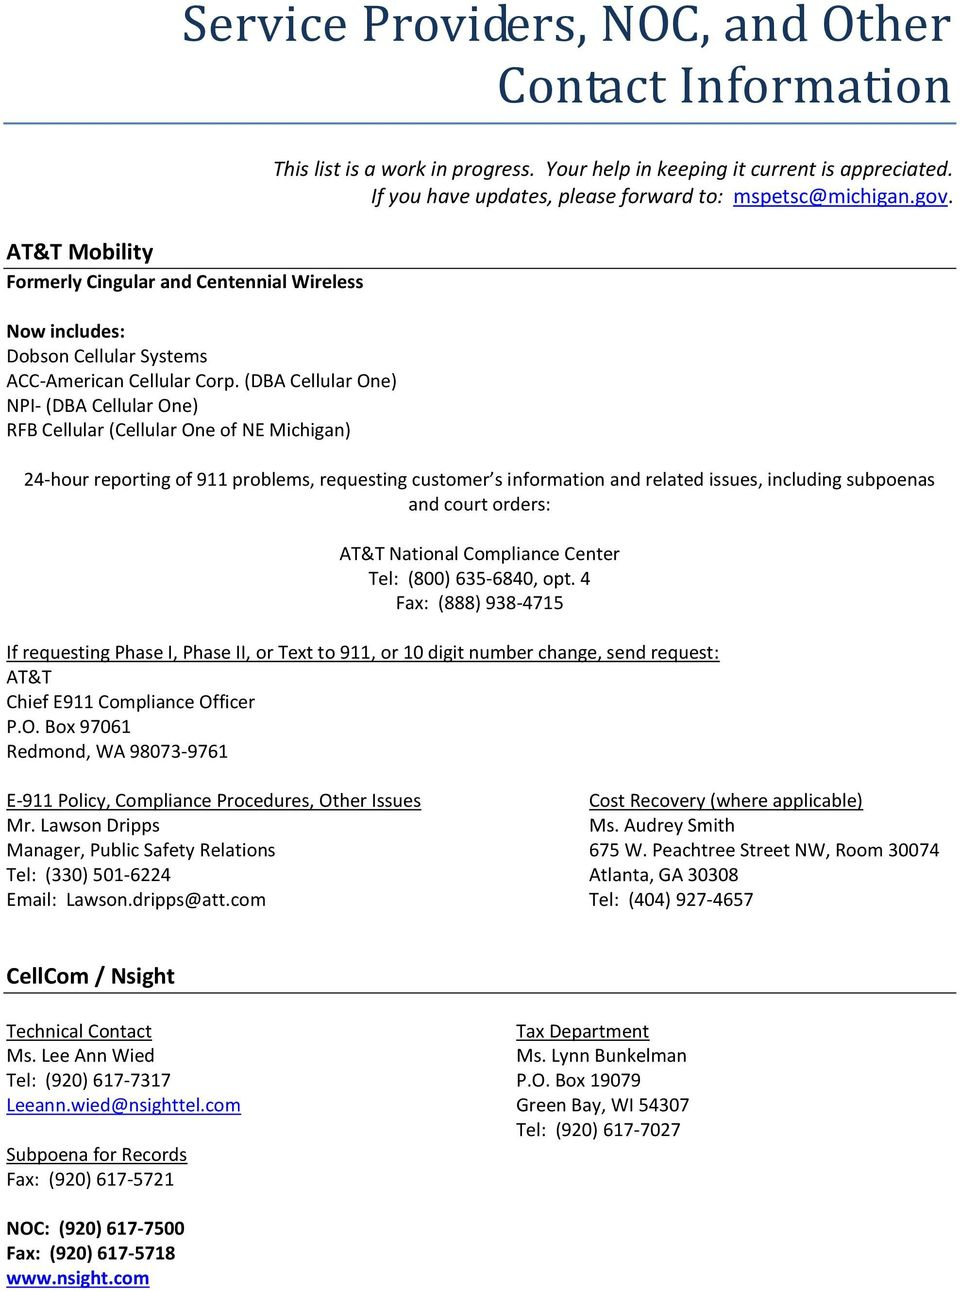 service providers, noc, and other contact information - pdf